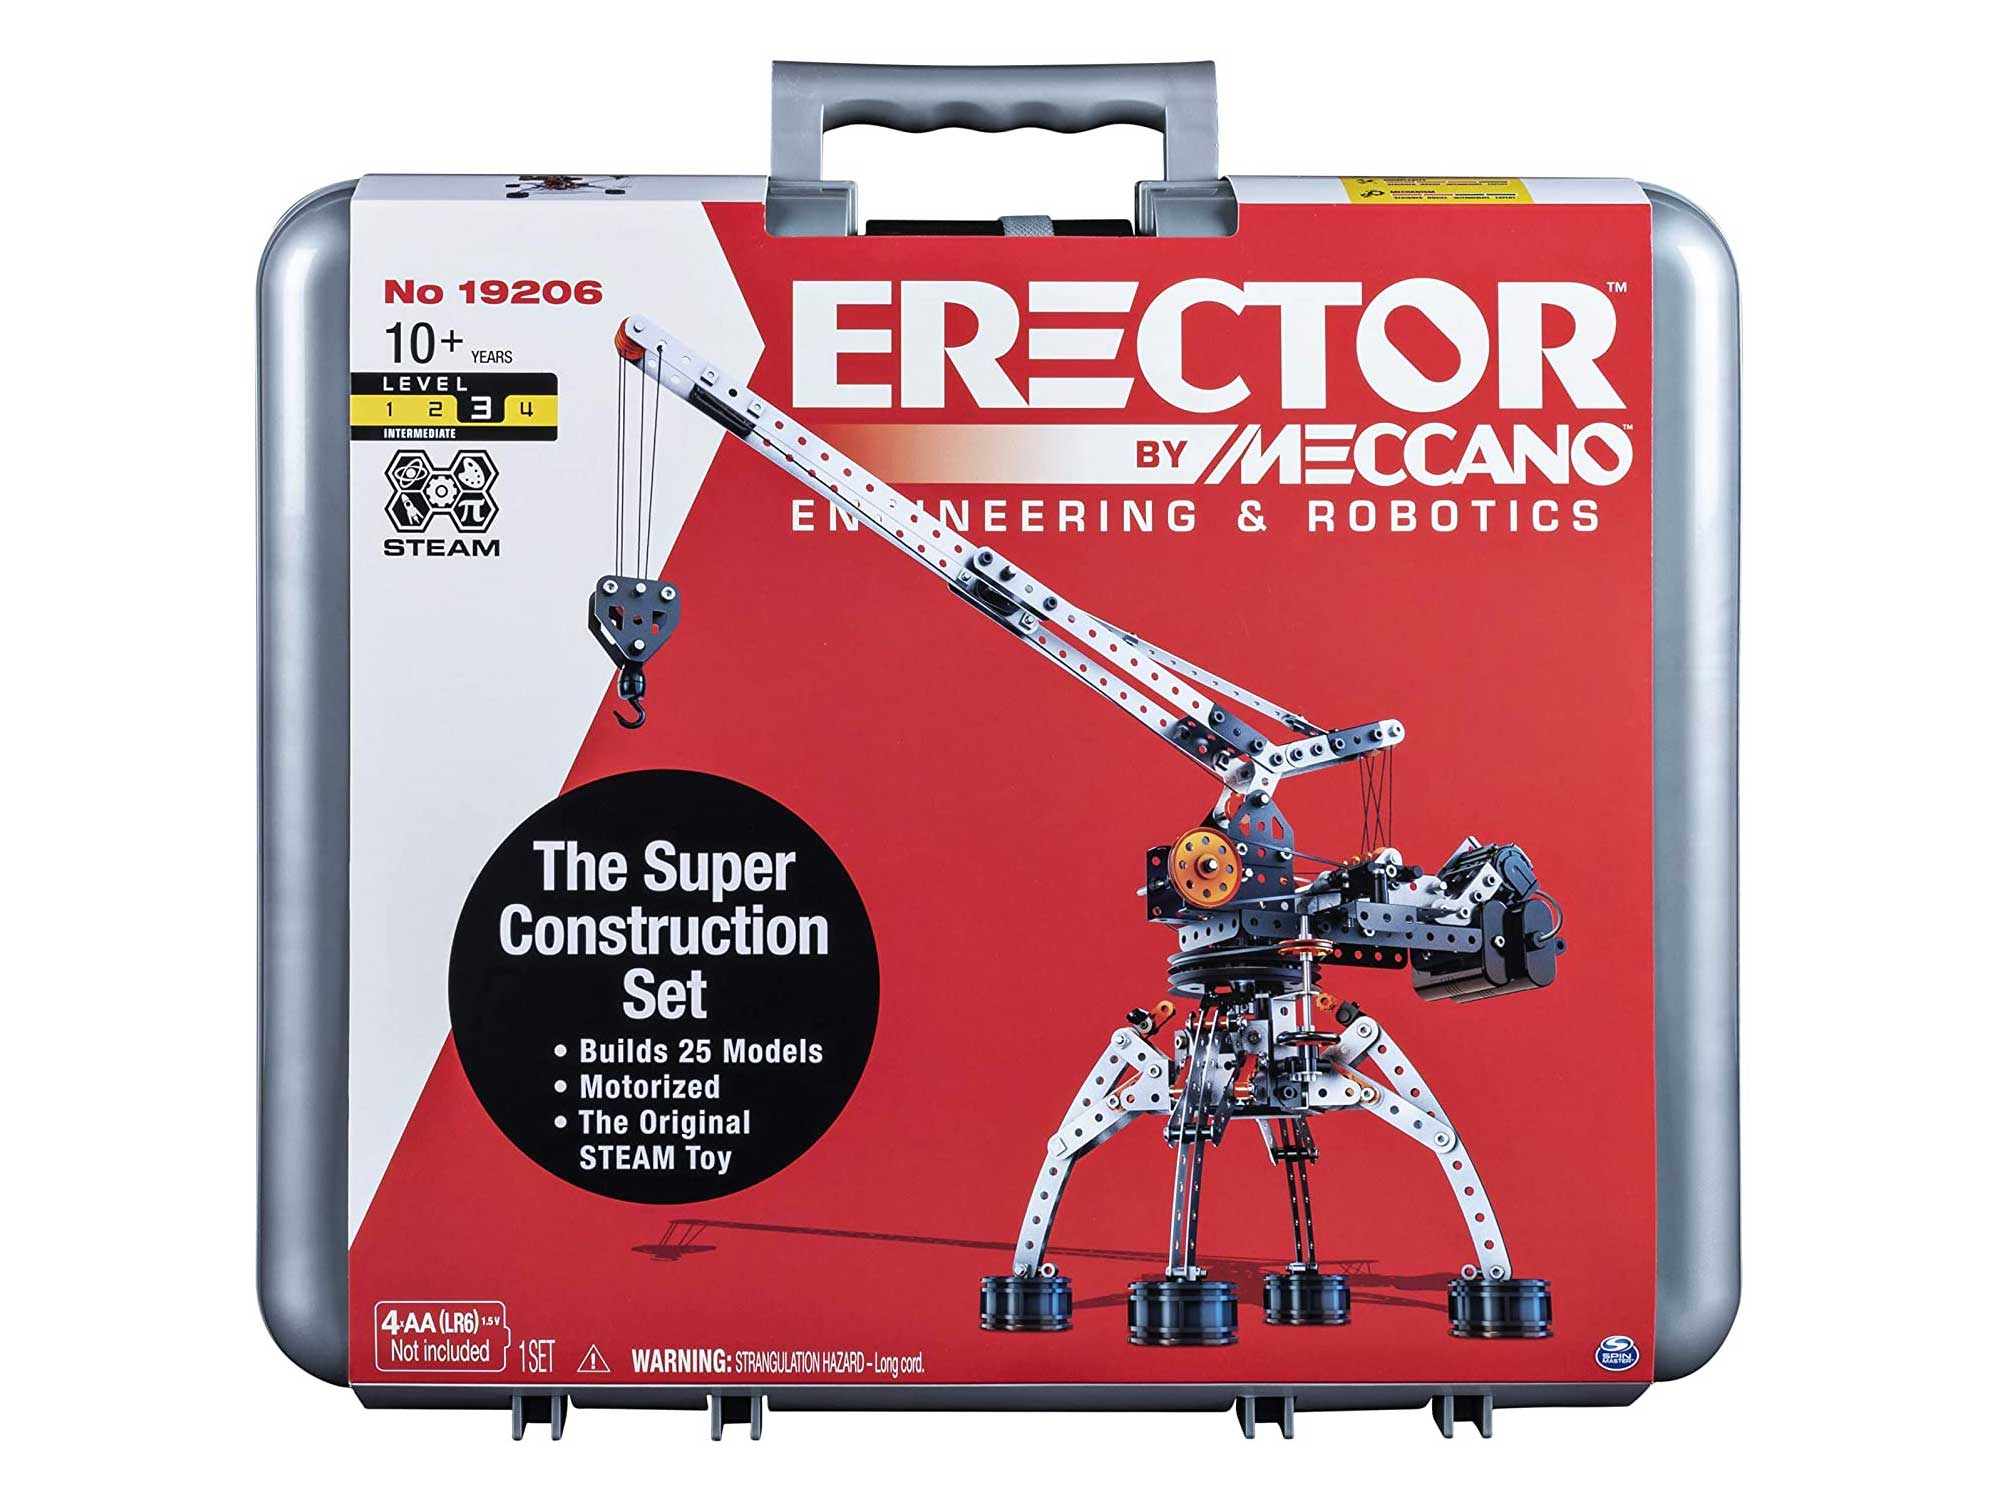 Erector by Meccano Super Construction 25-In-1 Motorized Building Set, Steam Education Toy